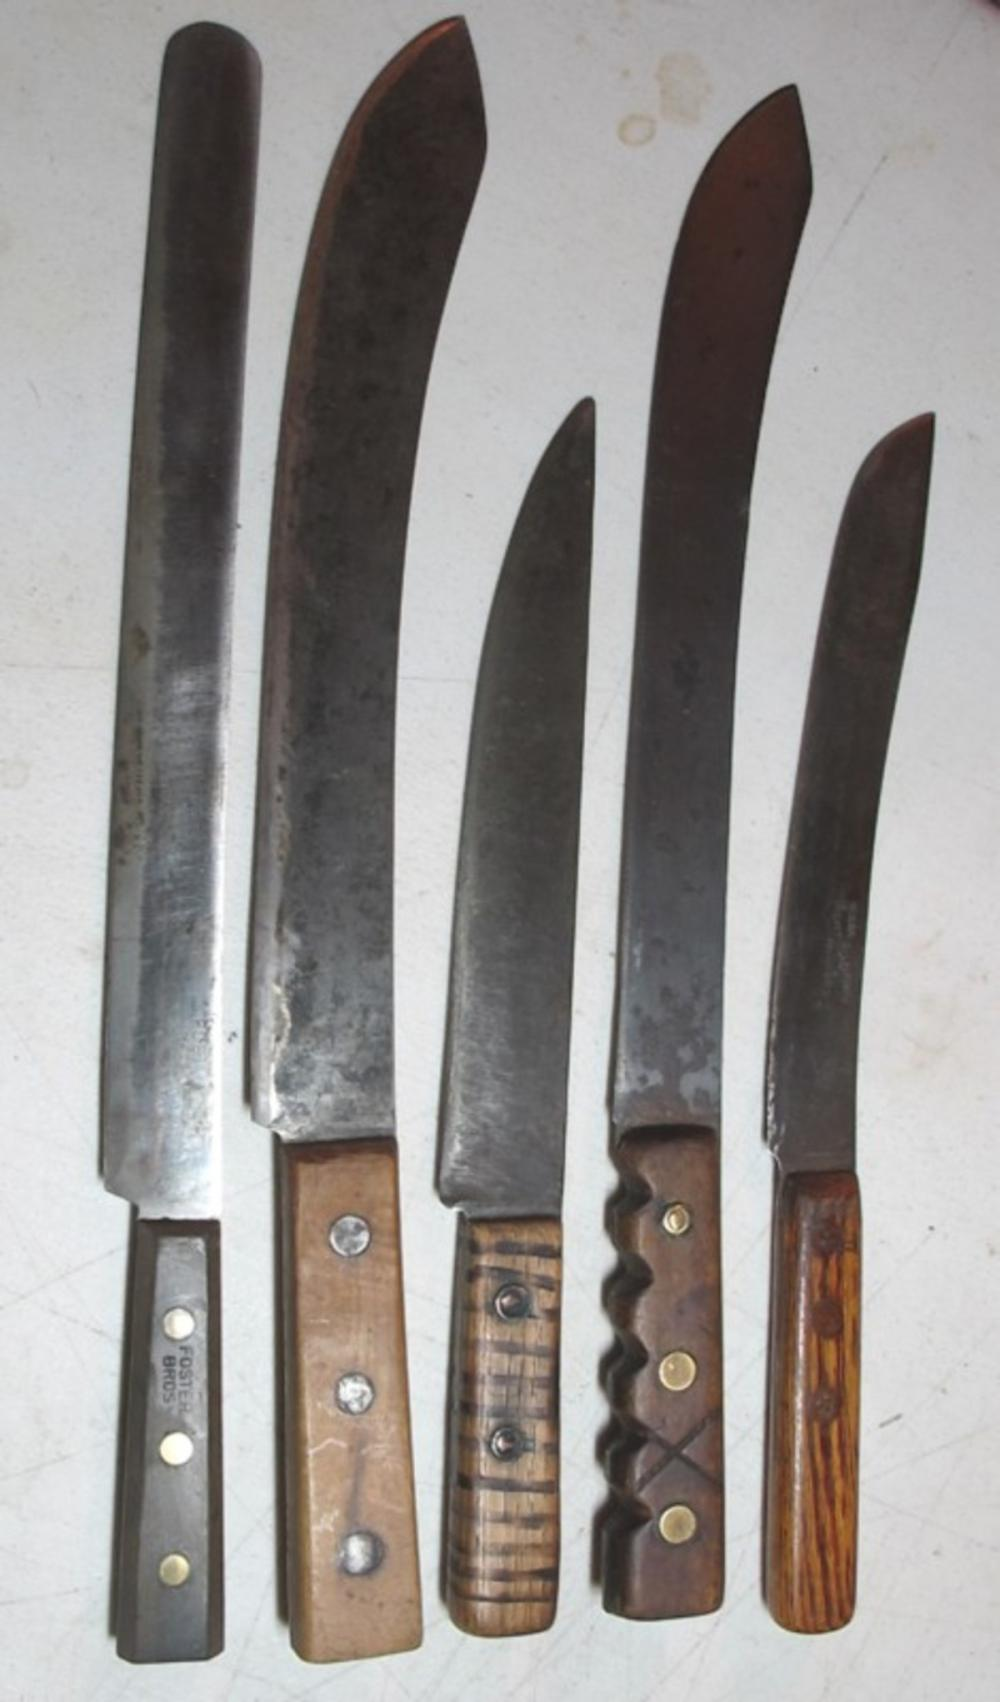 5 DIFF ANTIQUE BUTCHER KITCHEN KNIFE KNIVES FOSTER BROS CARVED HANDLE VILLAGE BLACKSMITH MILWAUKEE ETC